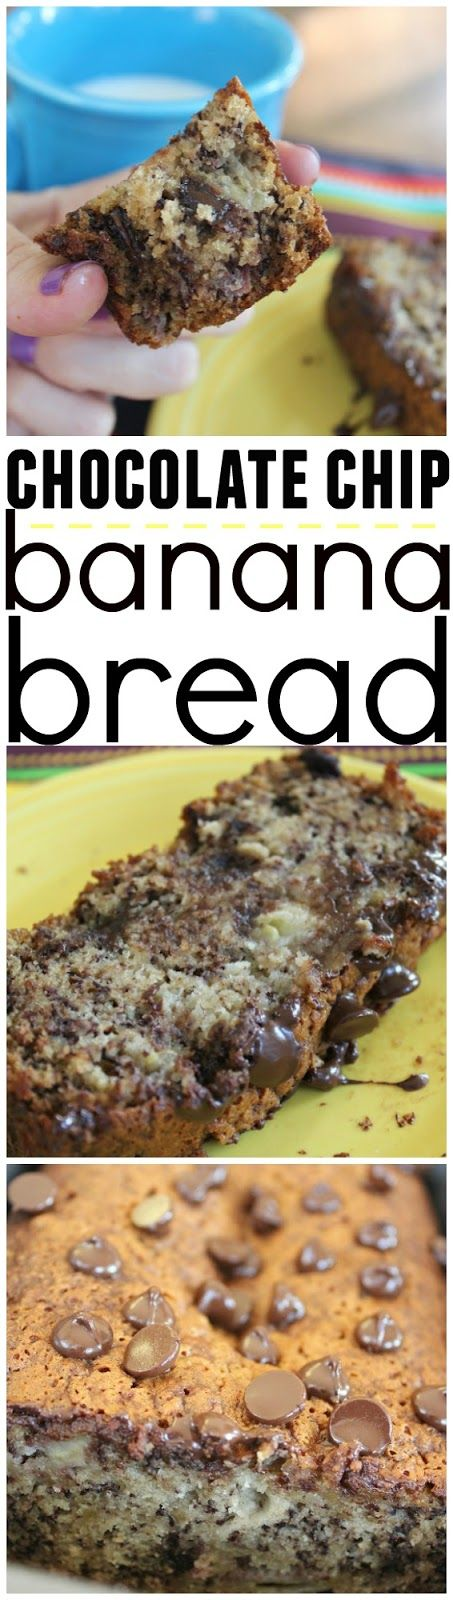 the best banana bread EVER and so easy!